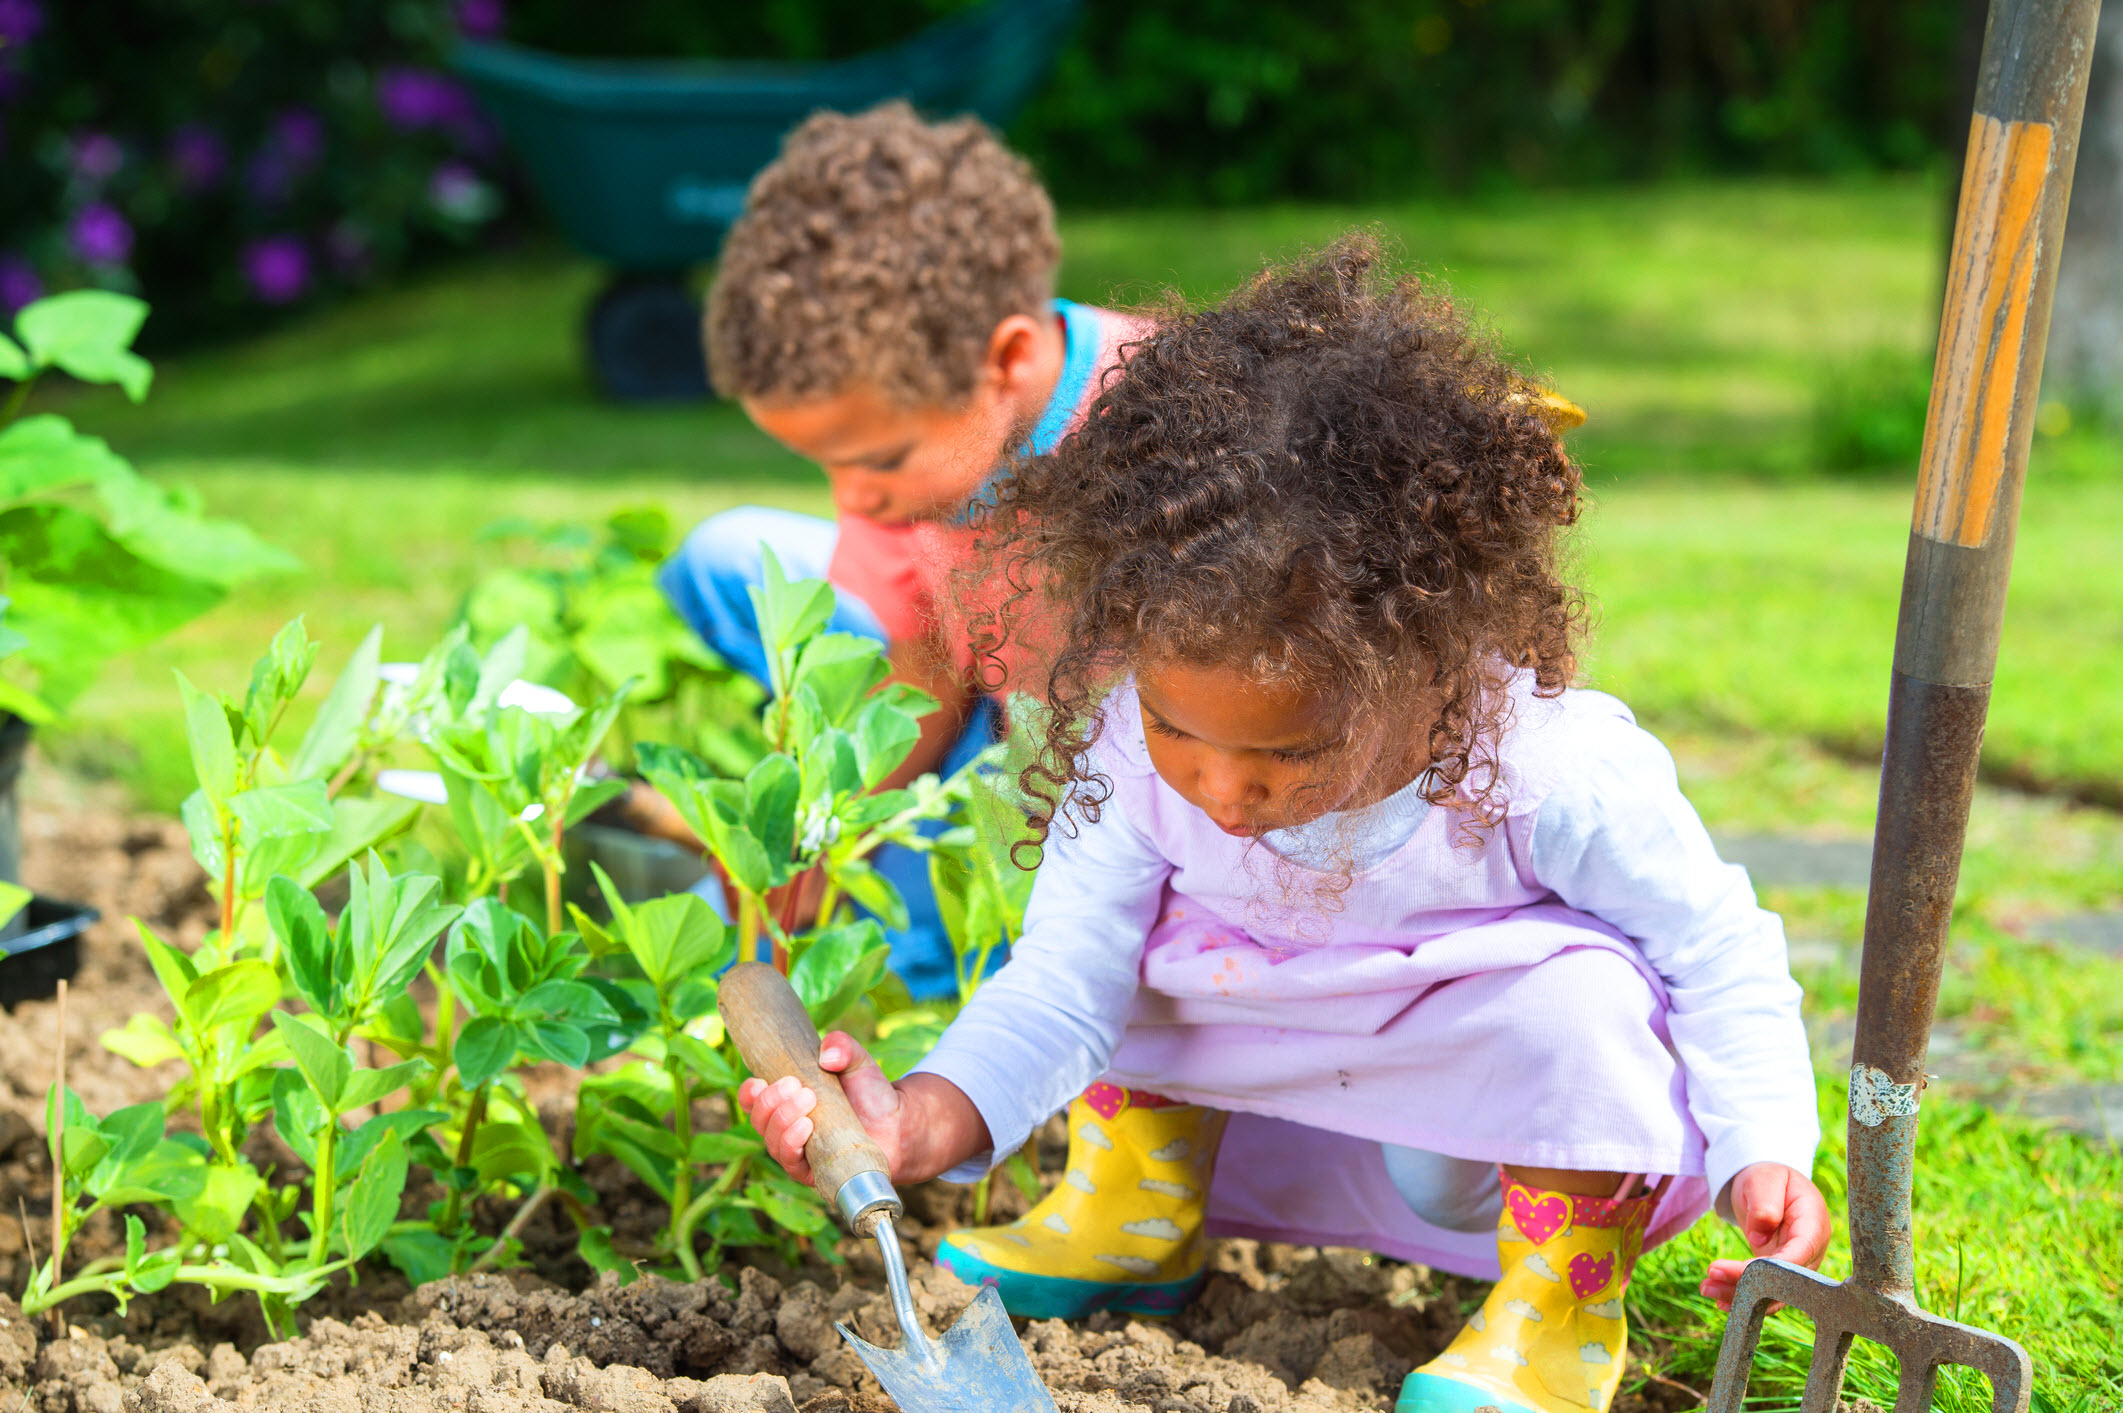 two small children, a boy and a girl, gardening near green plants